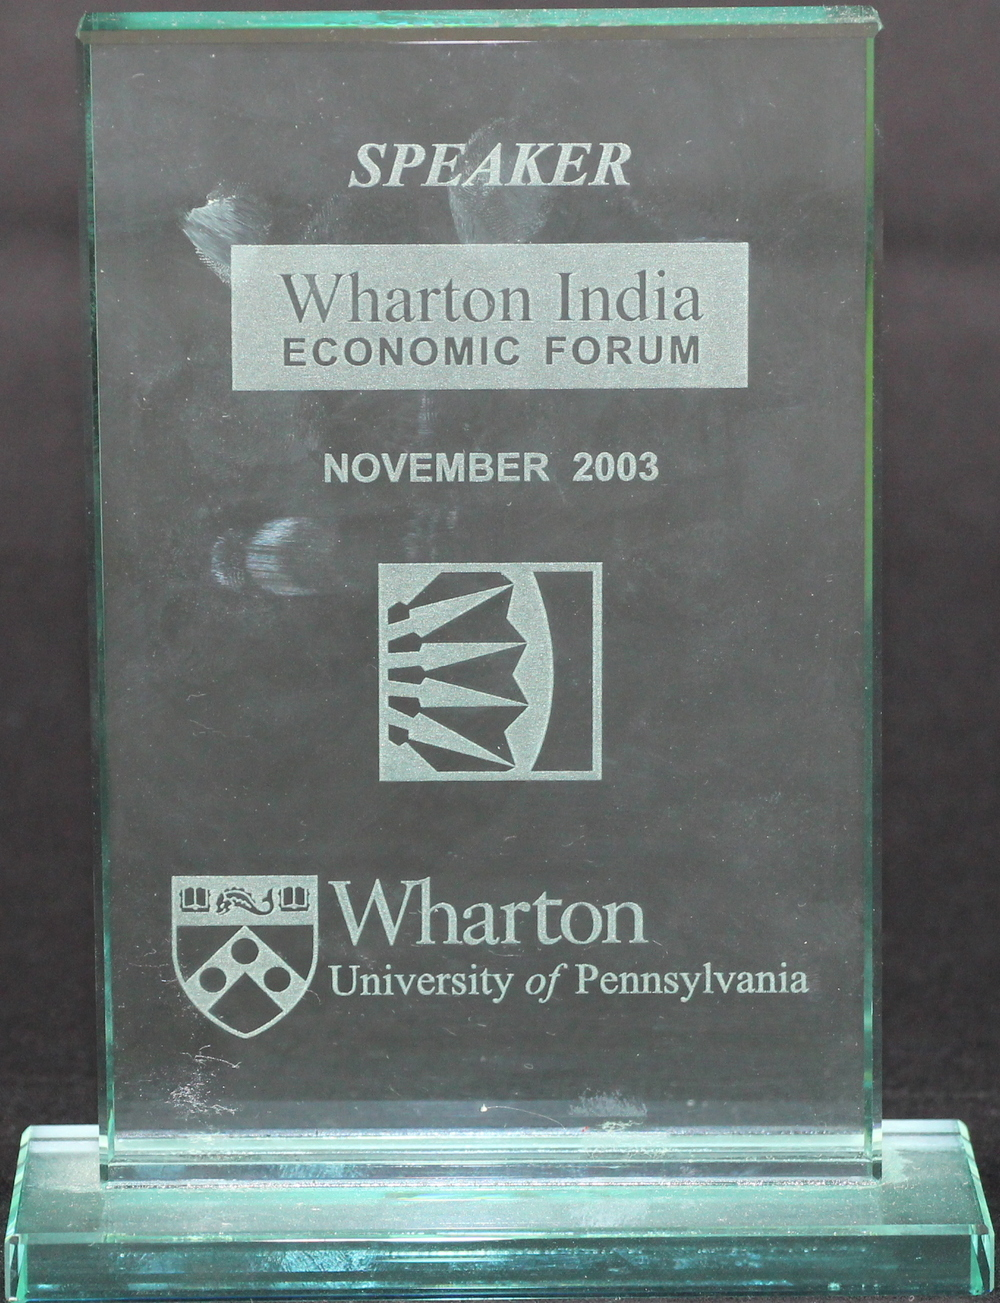 Wharton Indian Economic Forum Speaker Award, University of Pennsylvania Wharton School, 2003